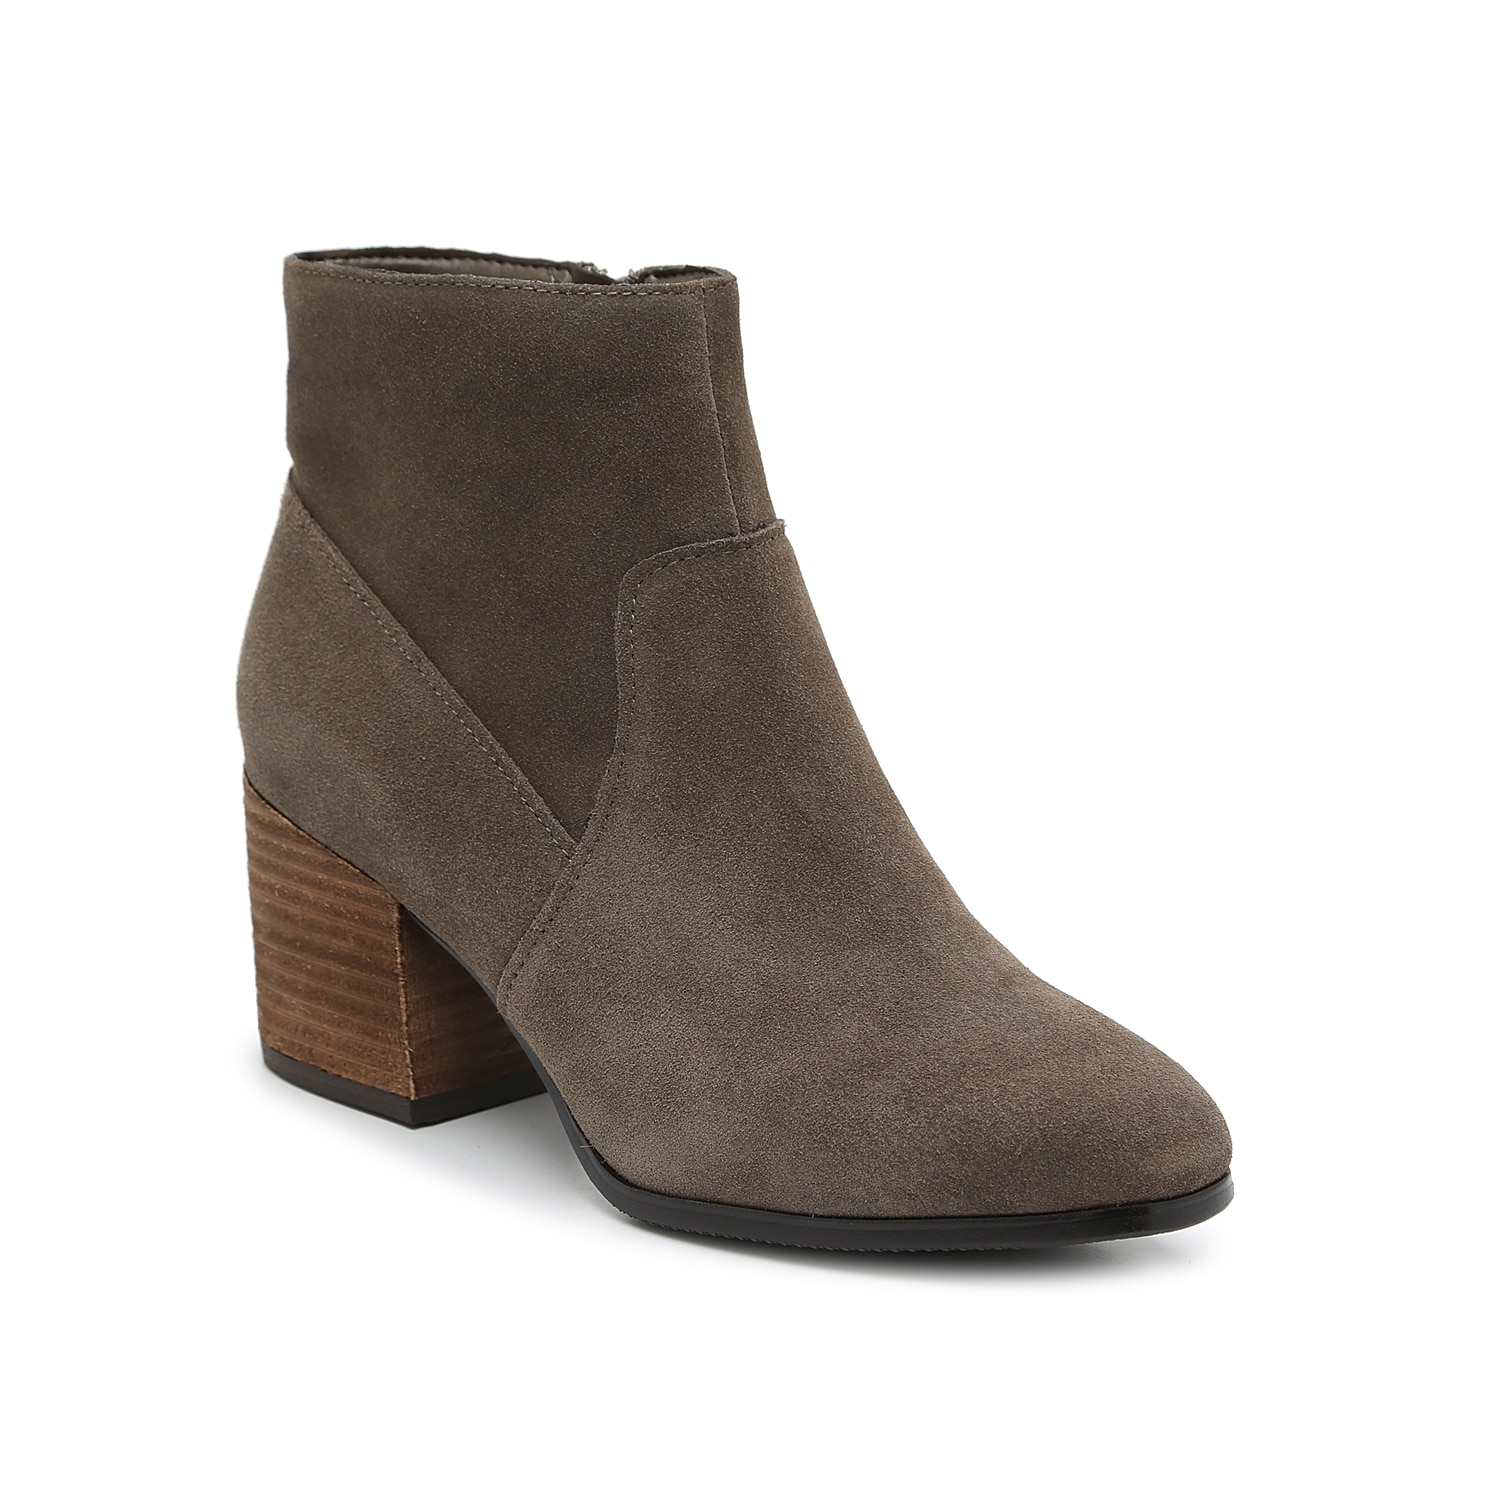 The Sondra bootie from Blondo will keep your shoe collection right up to date. This ankle boot is fashioned with a waterproof-treated suede upper and a stacked heel for some dramatic yet walkable height!Click here for Boot Measuring Guide.